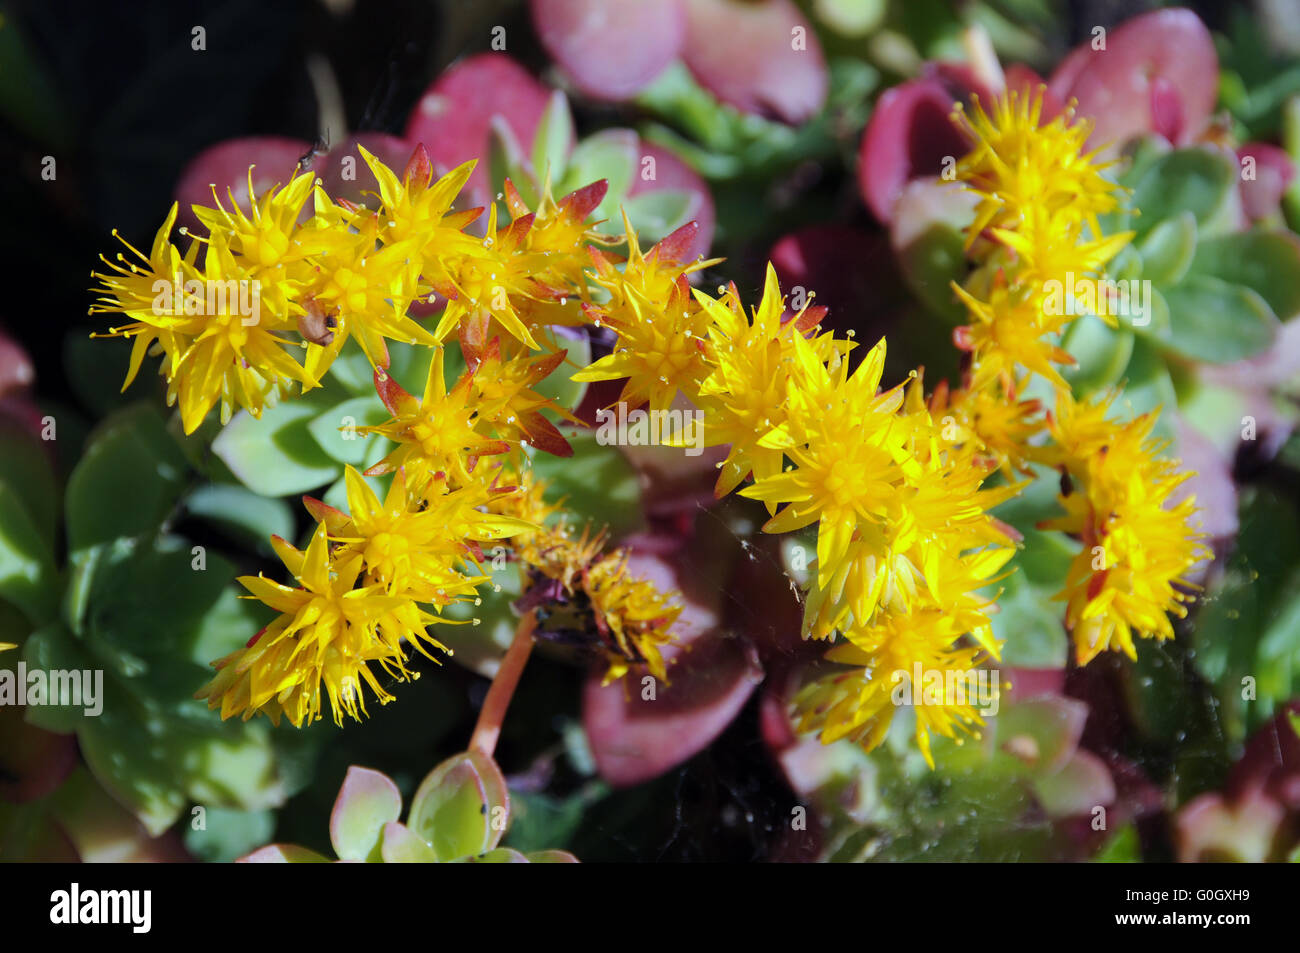 Yellow flowering succulent plant stock photo 103634309 alamy yellow flowering succulent plant mightylinksfo